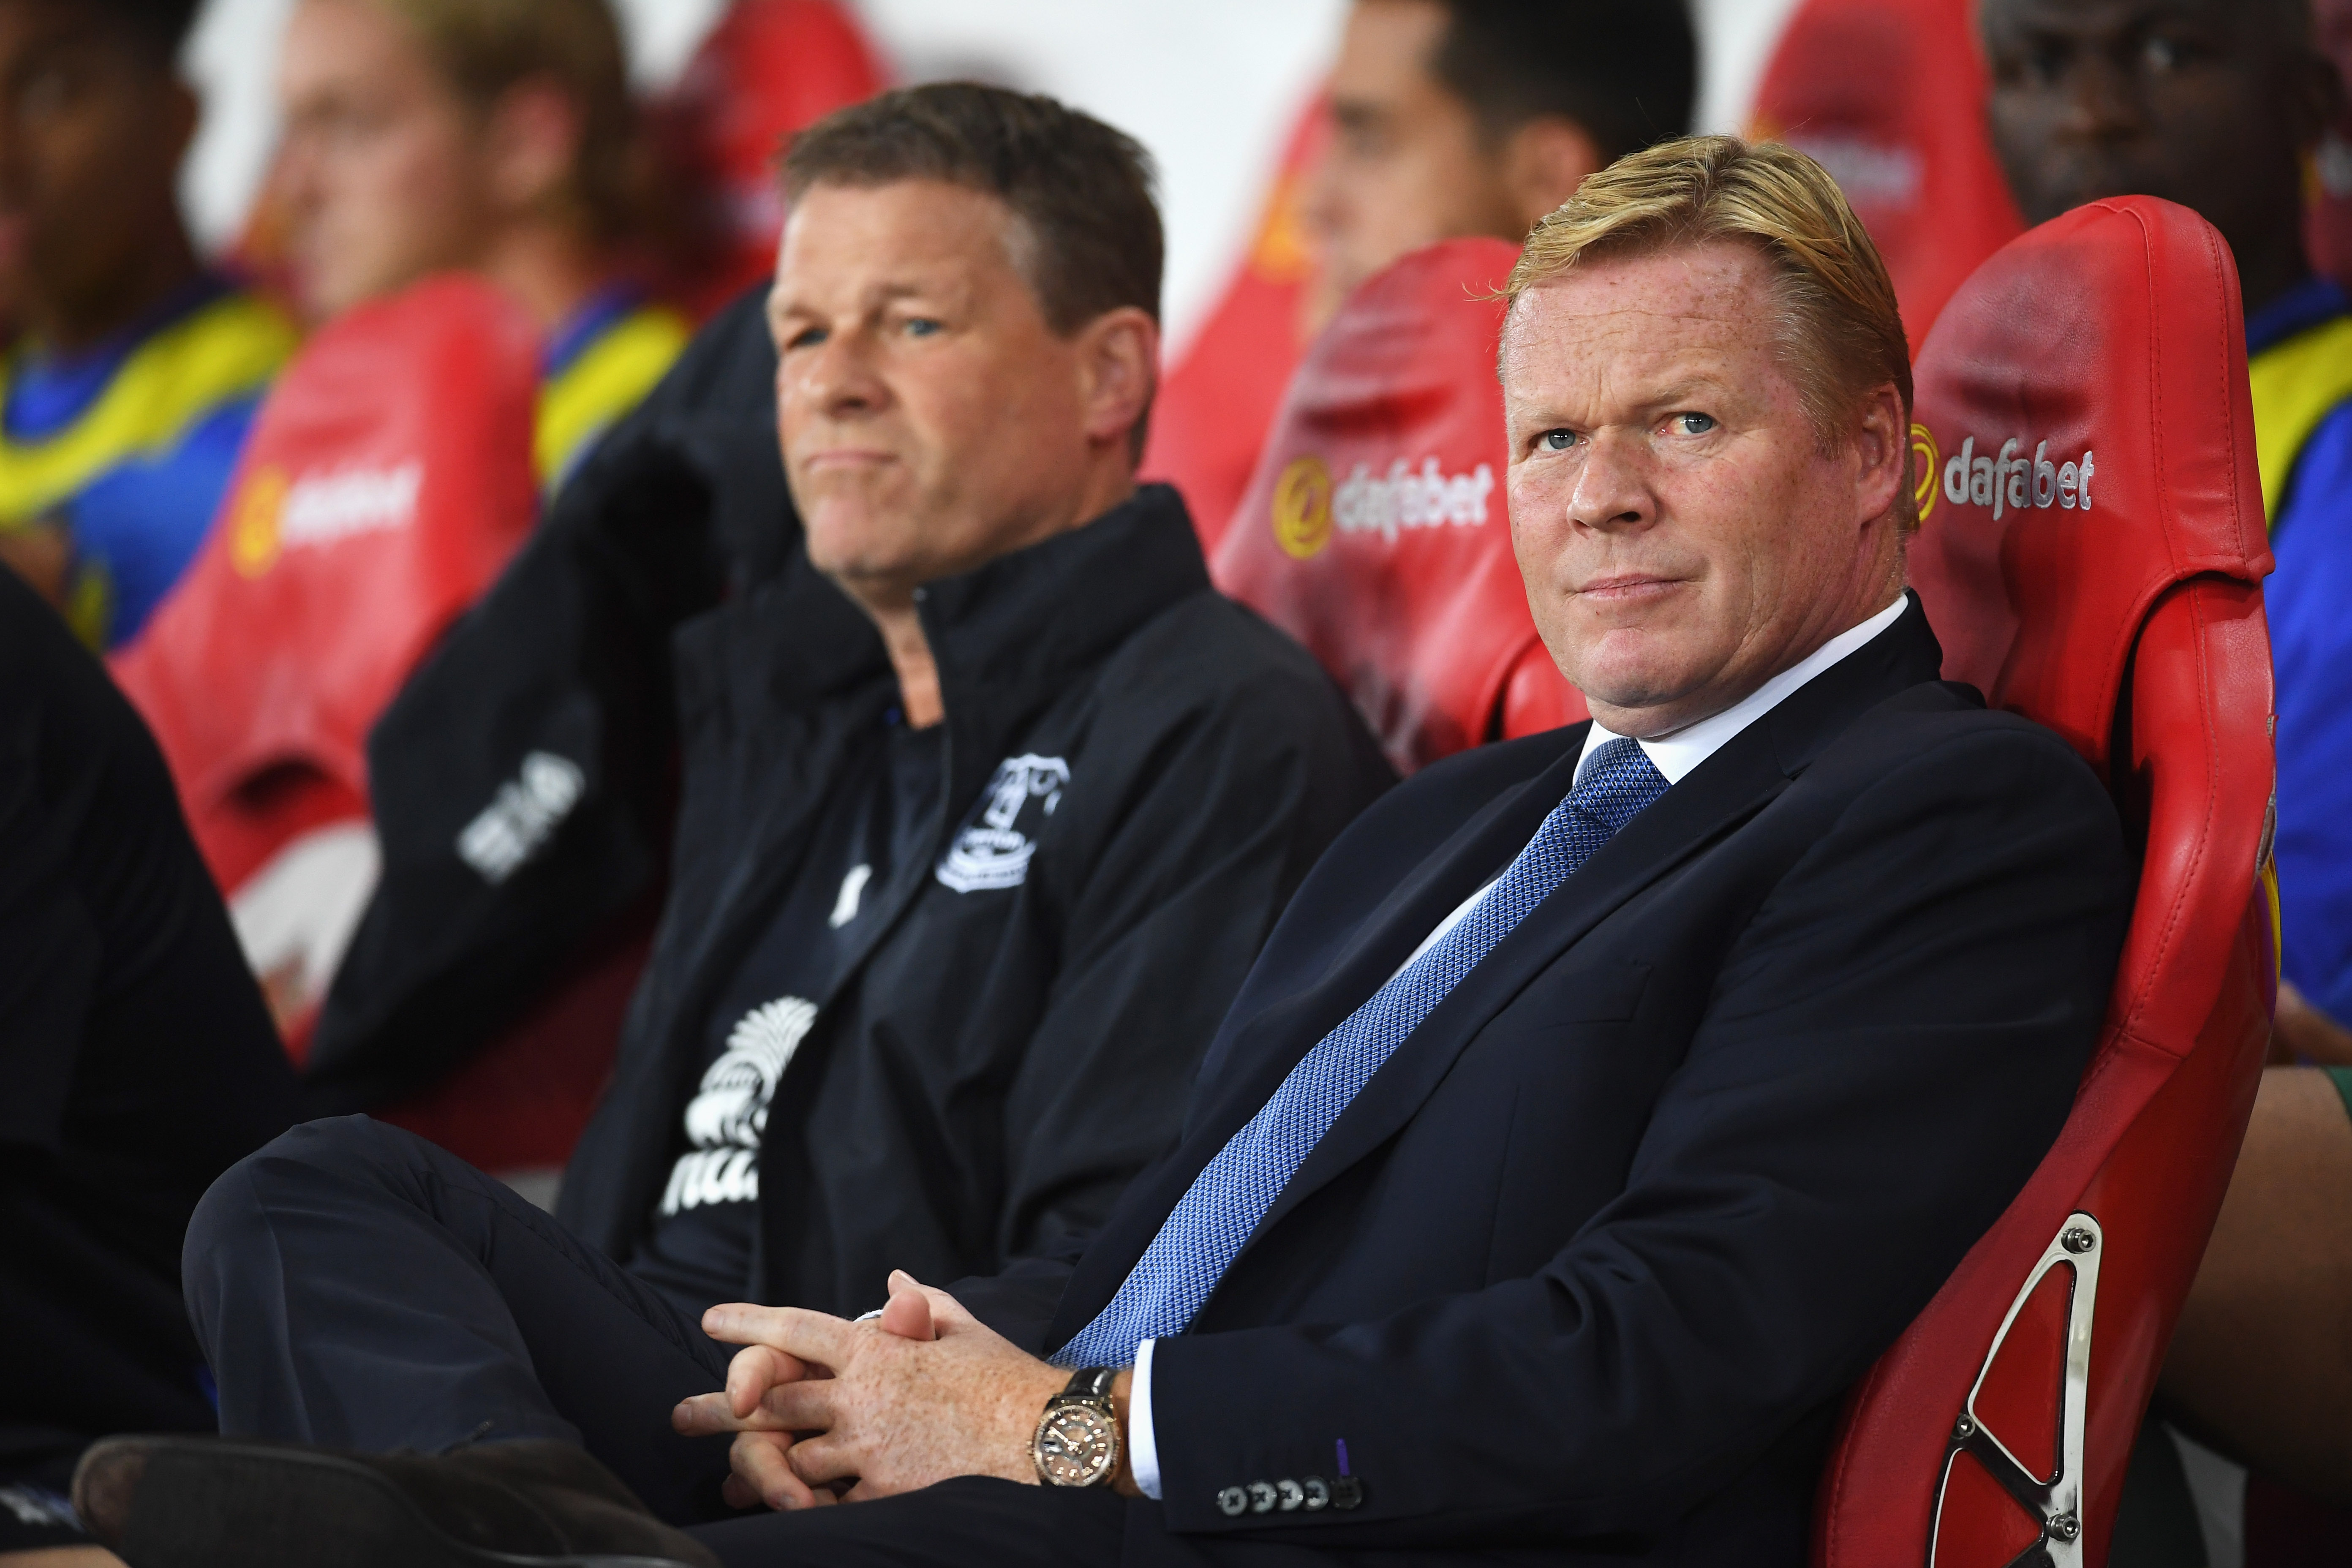 SUNDERLAND, ENGLAND - SEPTEMBER 12:  Ronald Koeman manager of Everton and assistant Erwin Koeman look on prior to the Premier League match between Sunderland and Everton at Stadium of Light on September 12, 2016 in Sunderland, England.  (Photo by Laurence Griffiths/Getty Images)